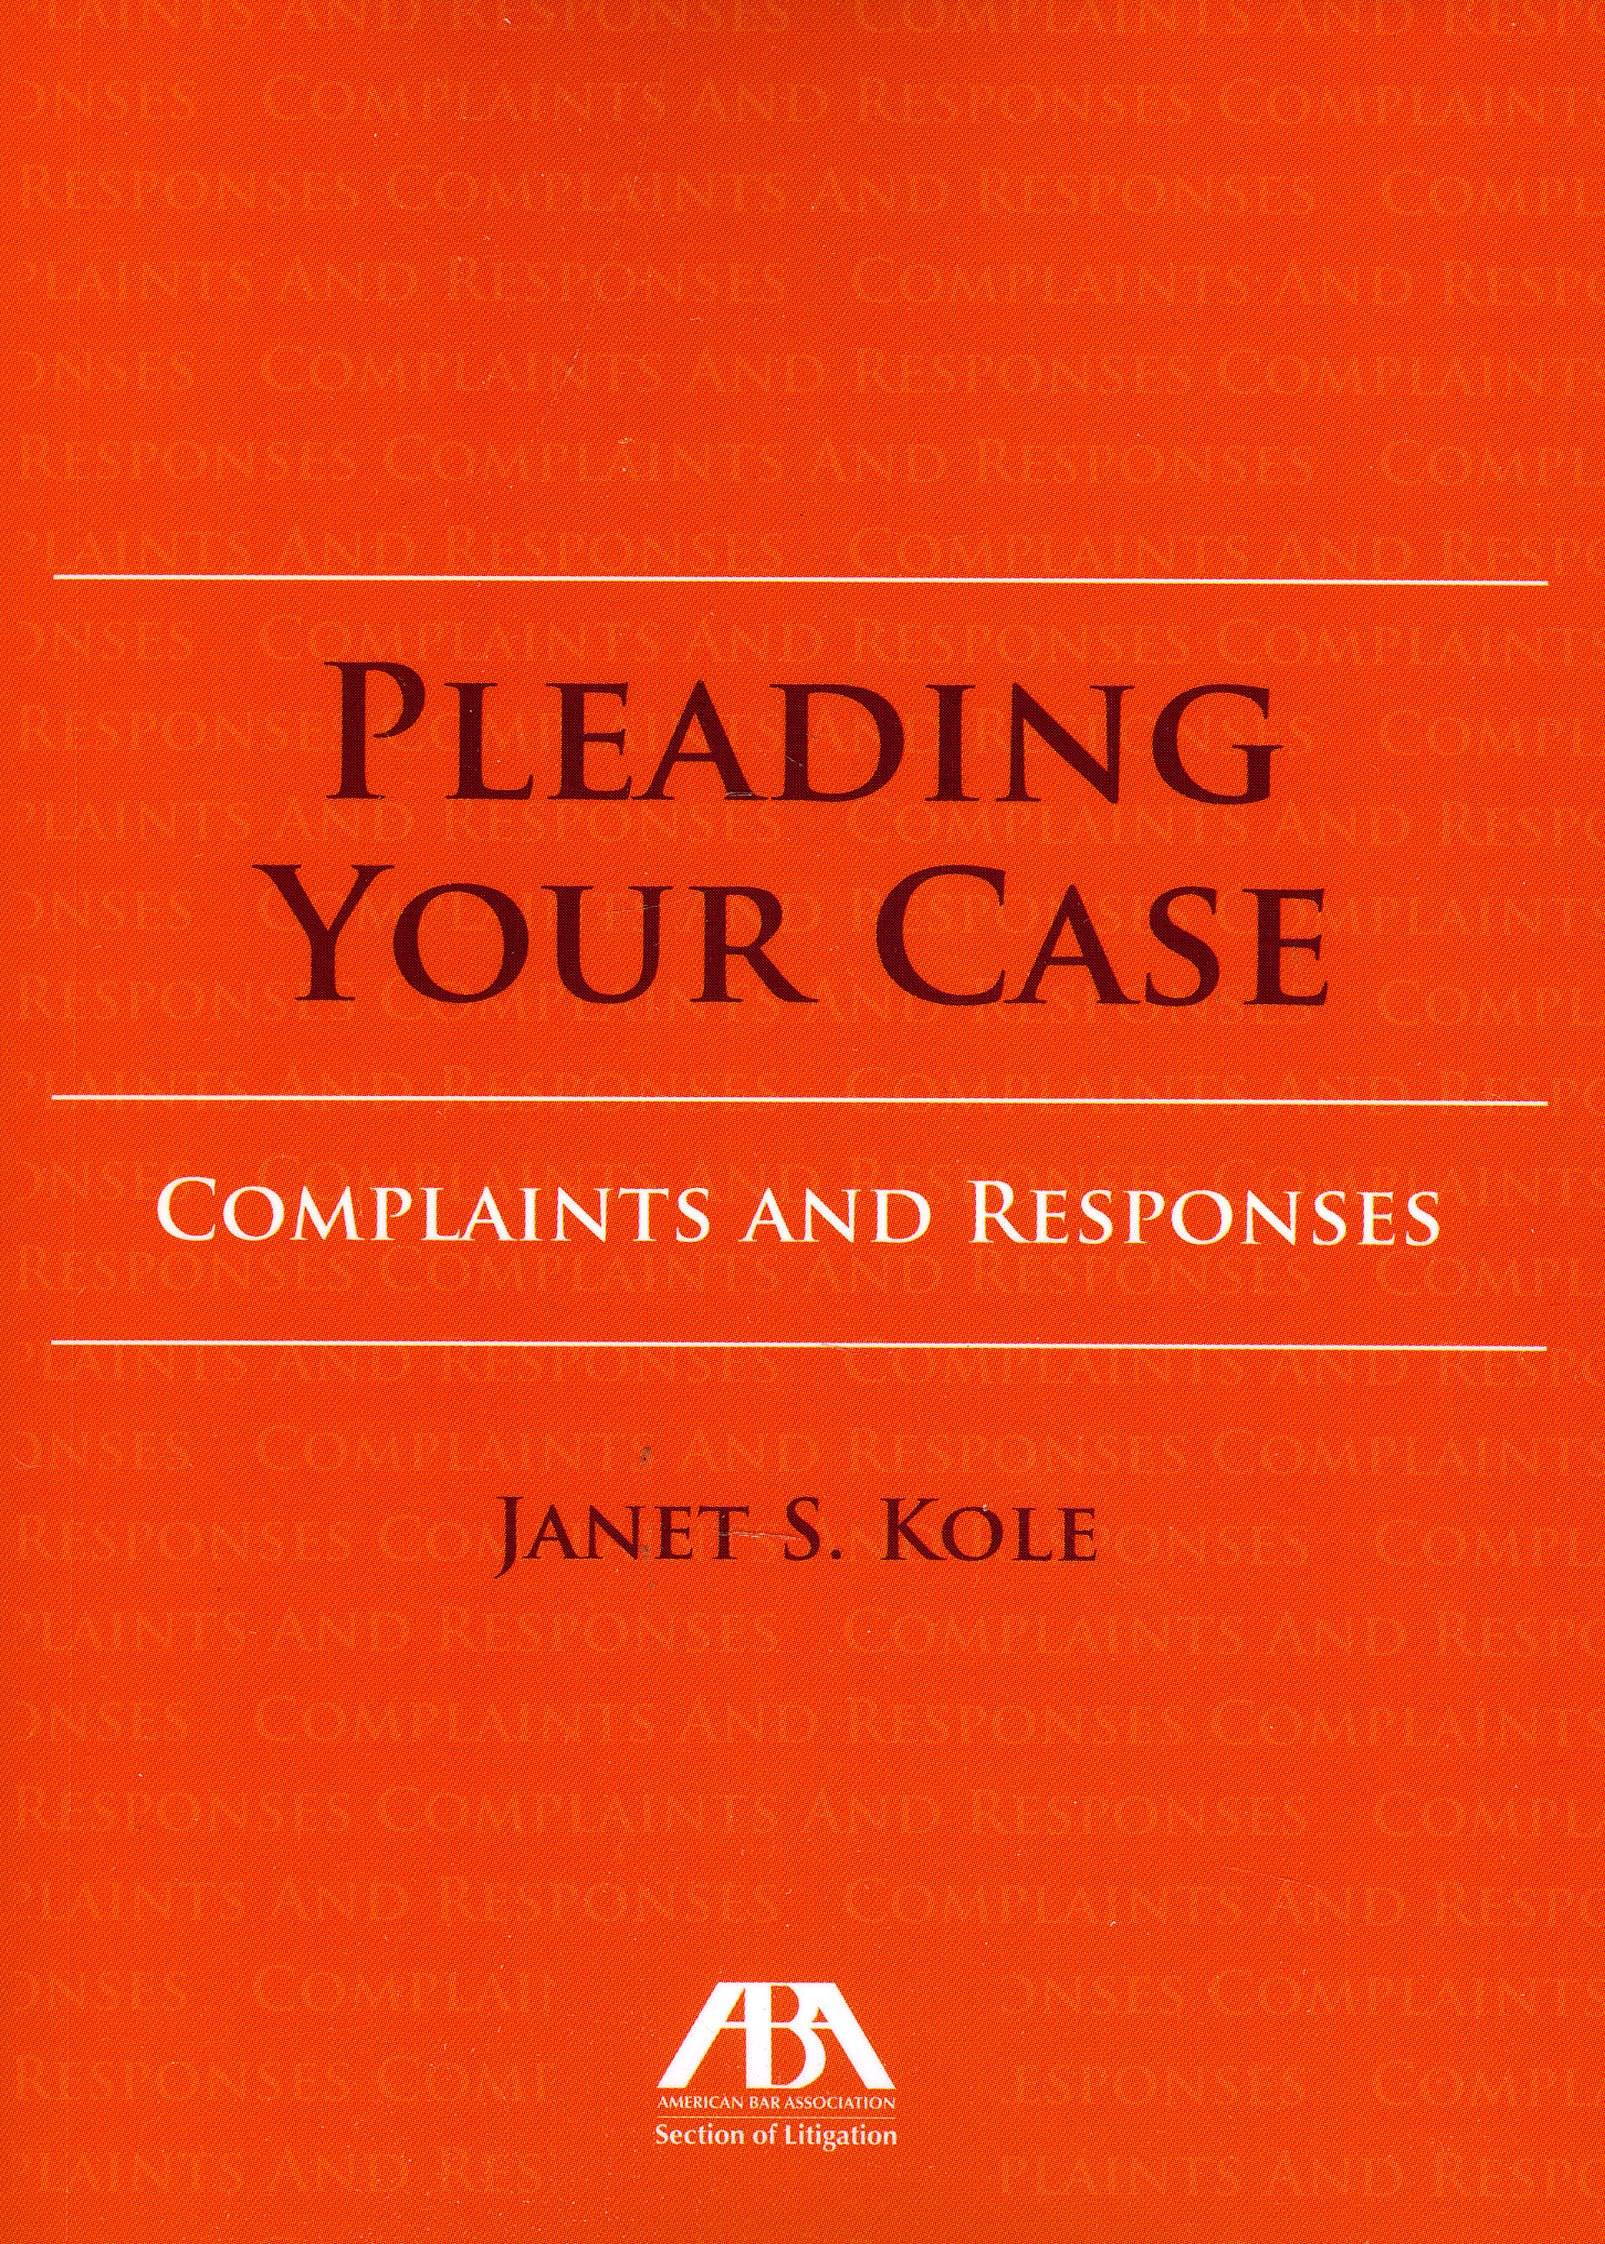 Pleading Your Case: Complaints and Responses